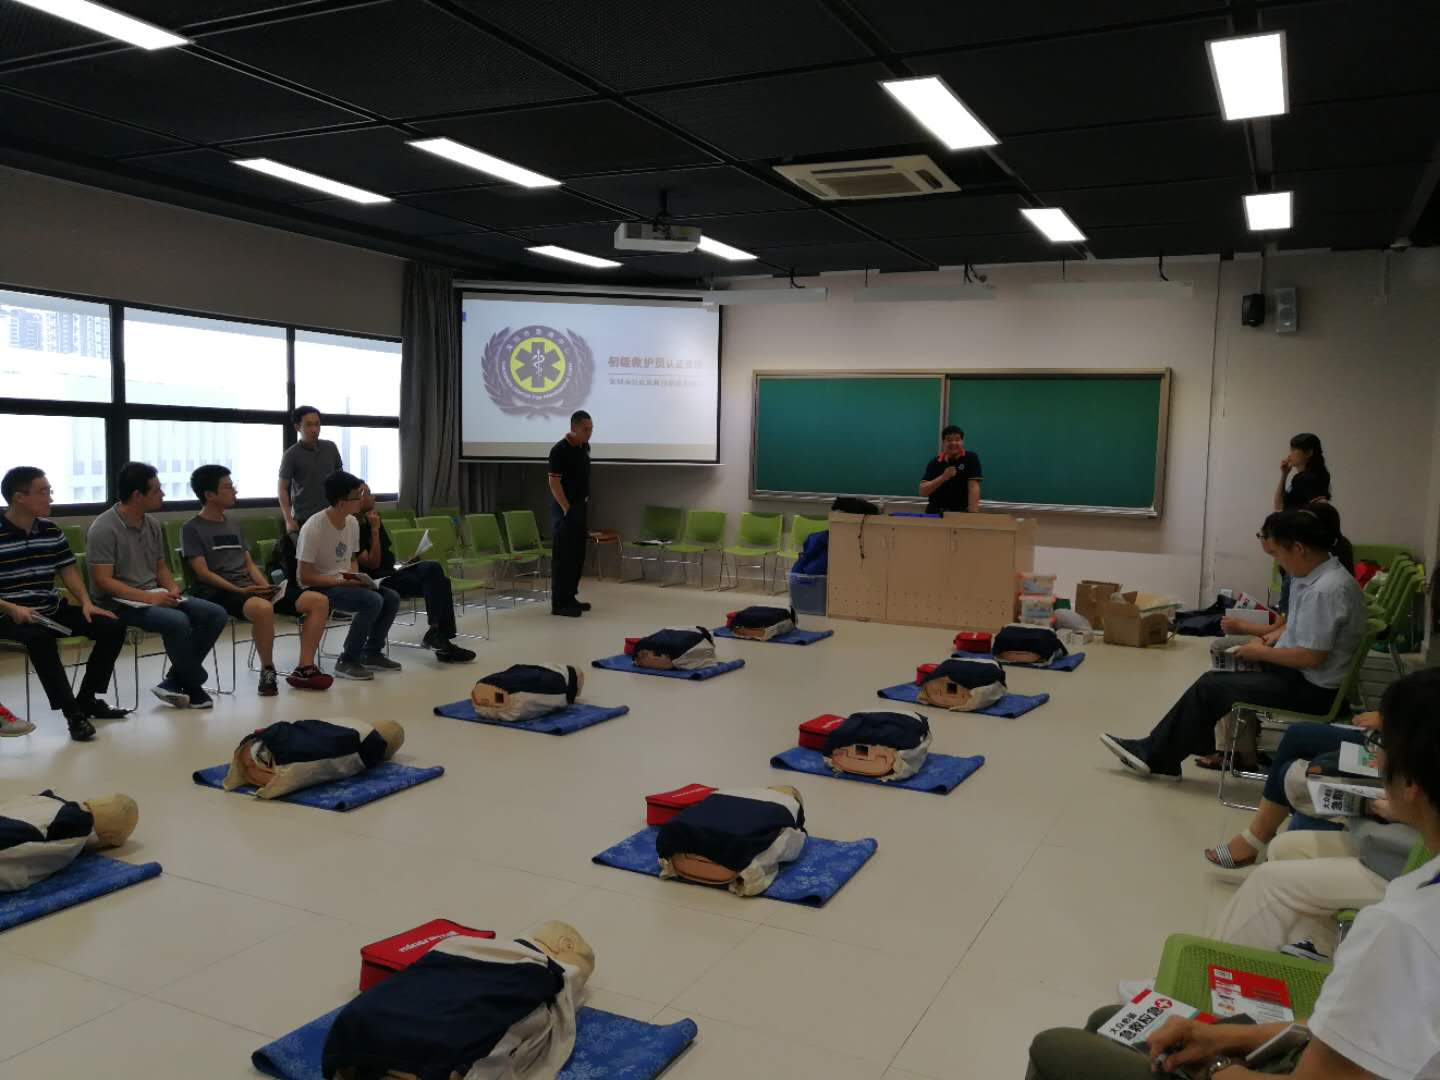 AED Training Session Held at SUSTech